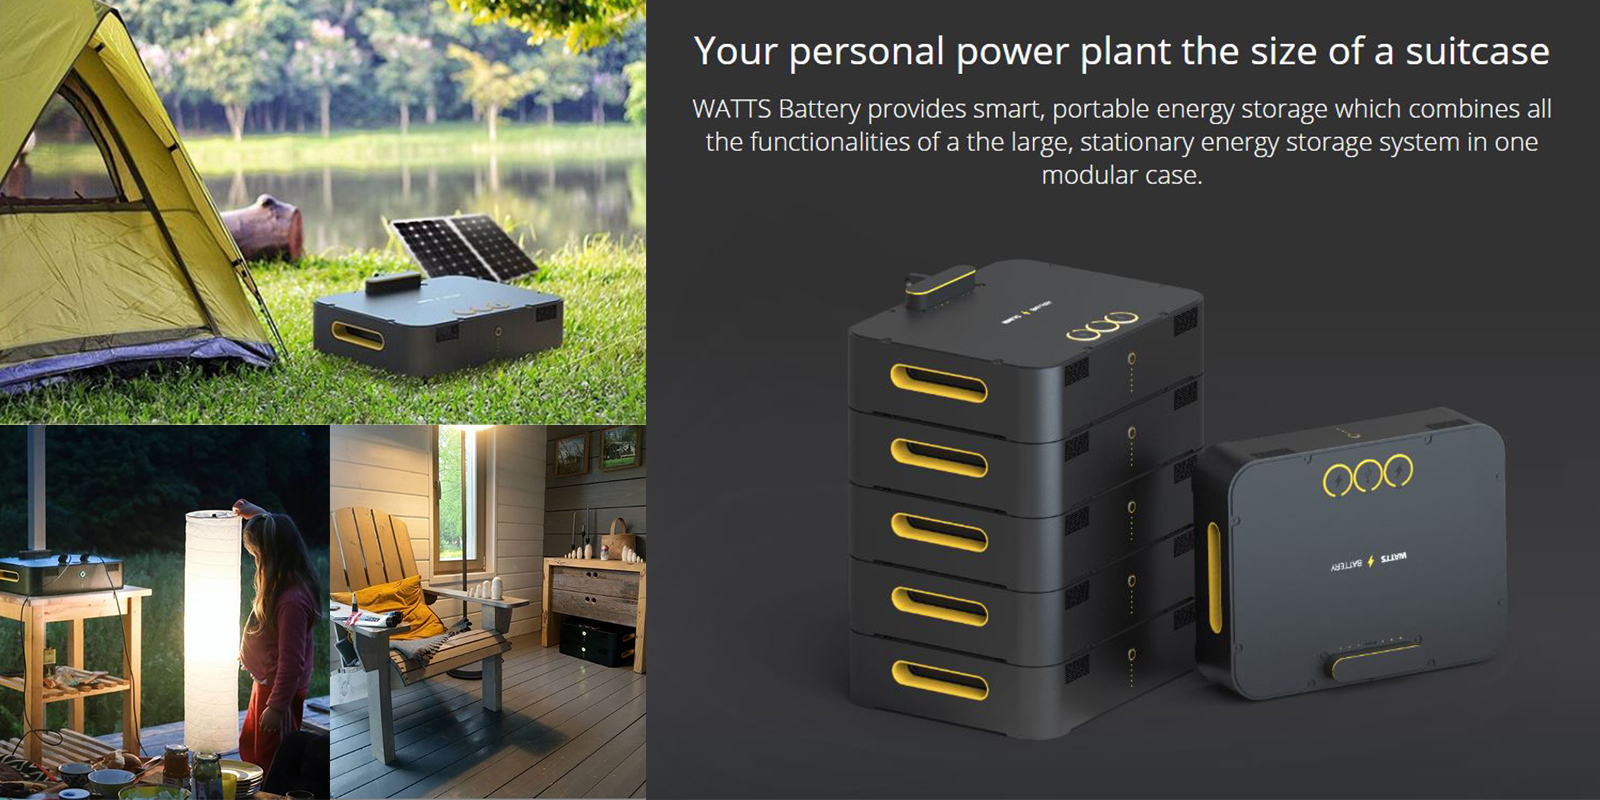 FREE SOLAR ENERGY at home and nomad way of life… We are solar lovers!